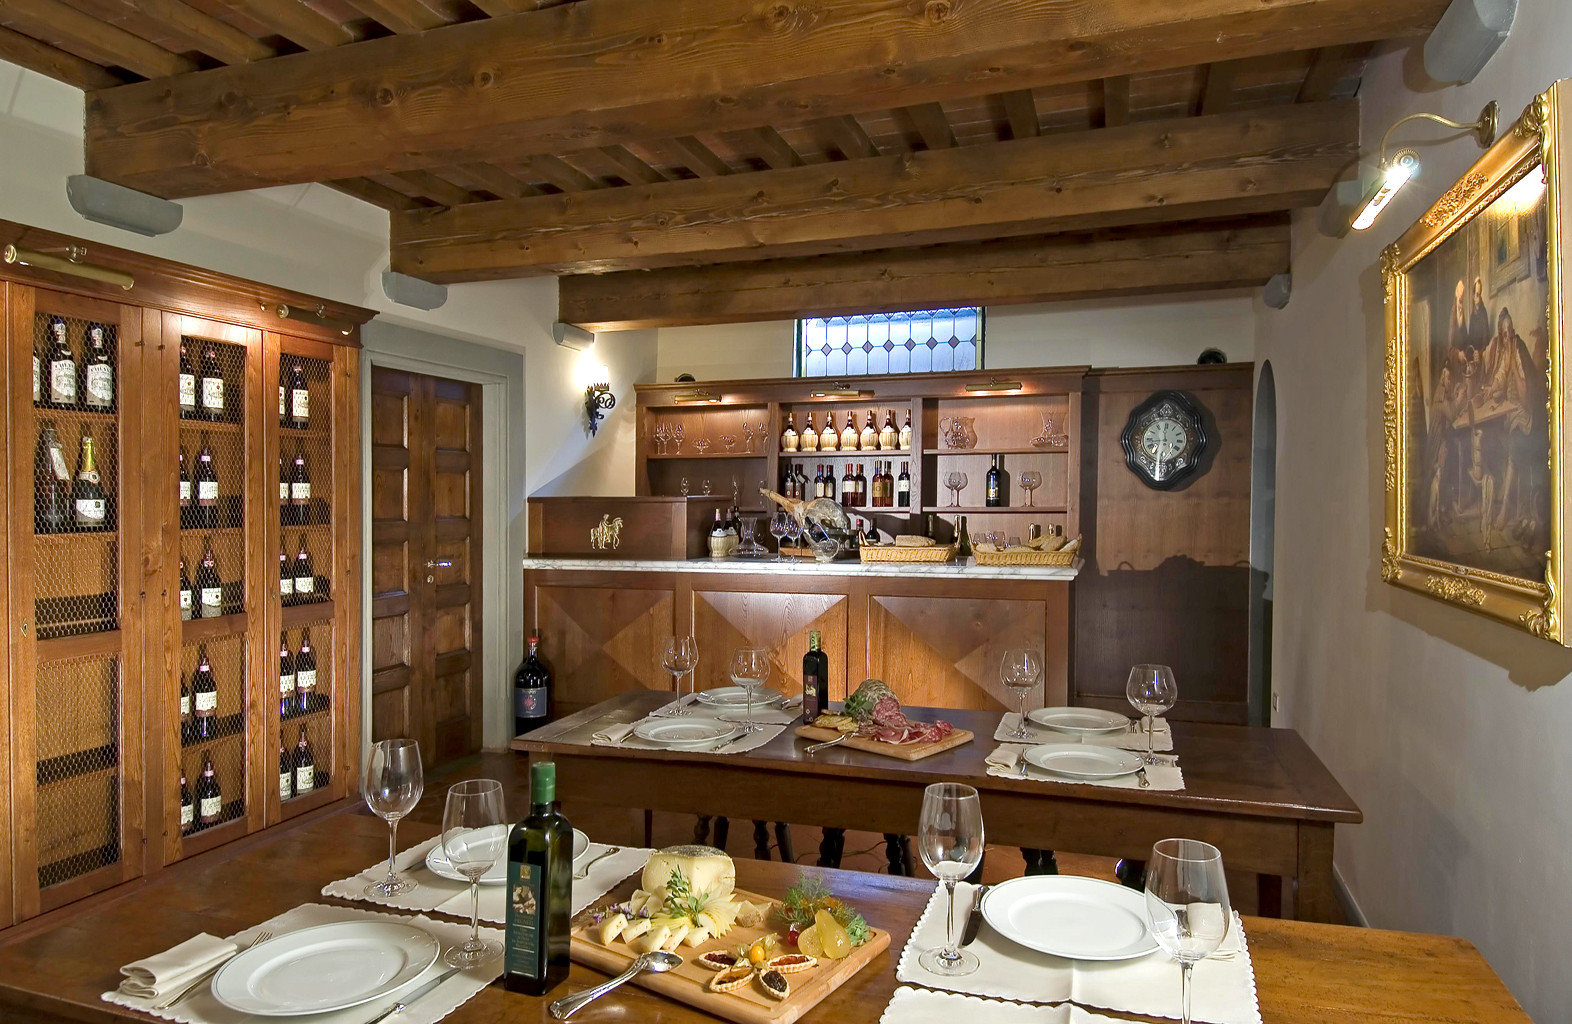 Bar Country Dining Drink Eat Rustic Wine-Tasting Winery property home cabinetry living room cottage counter